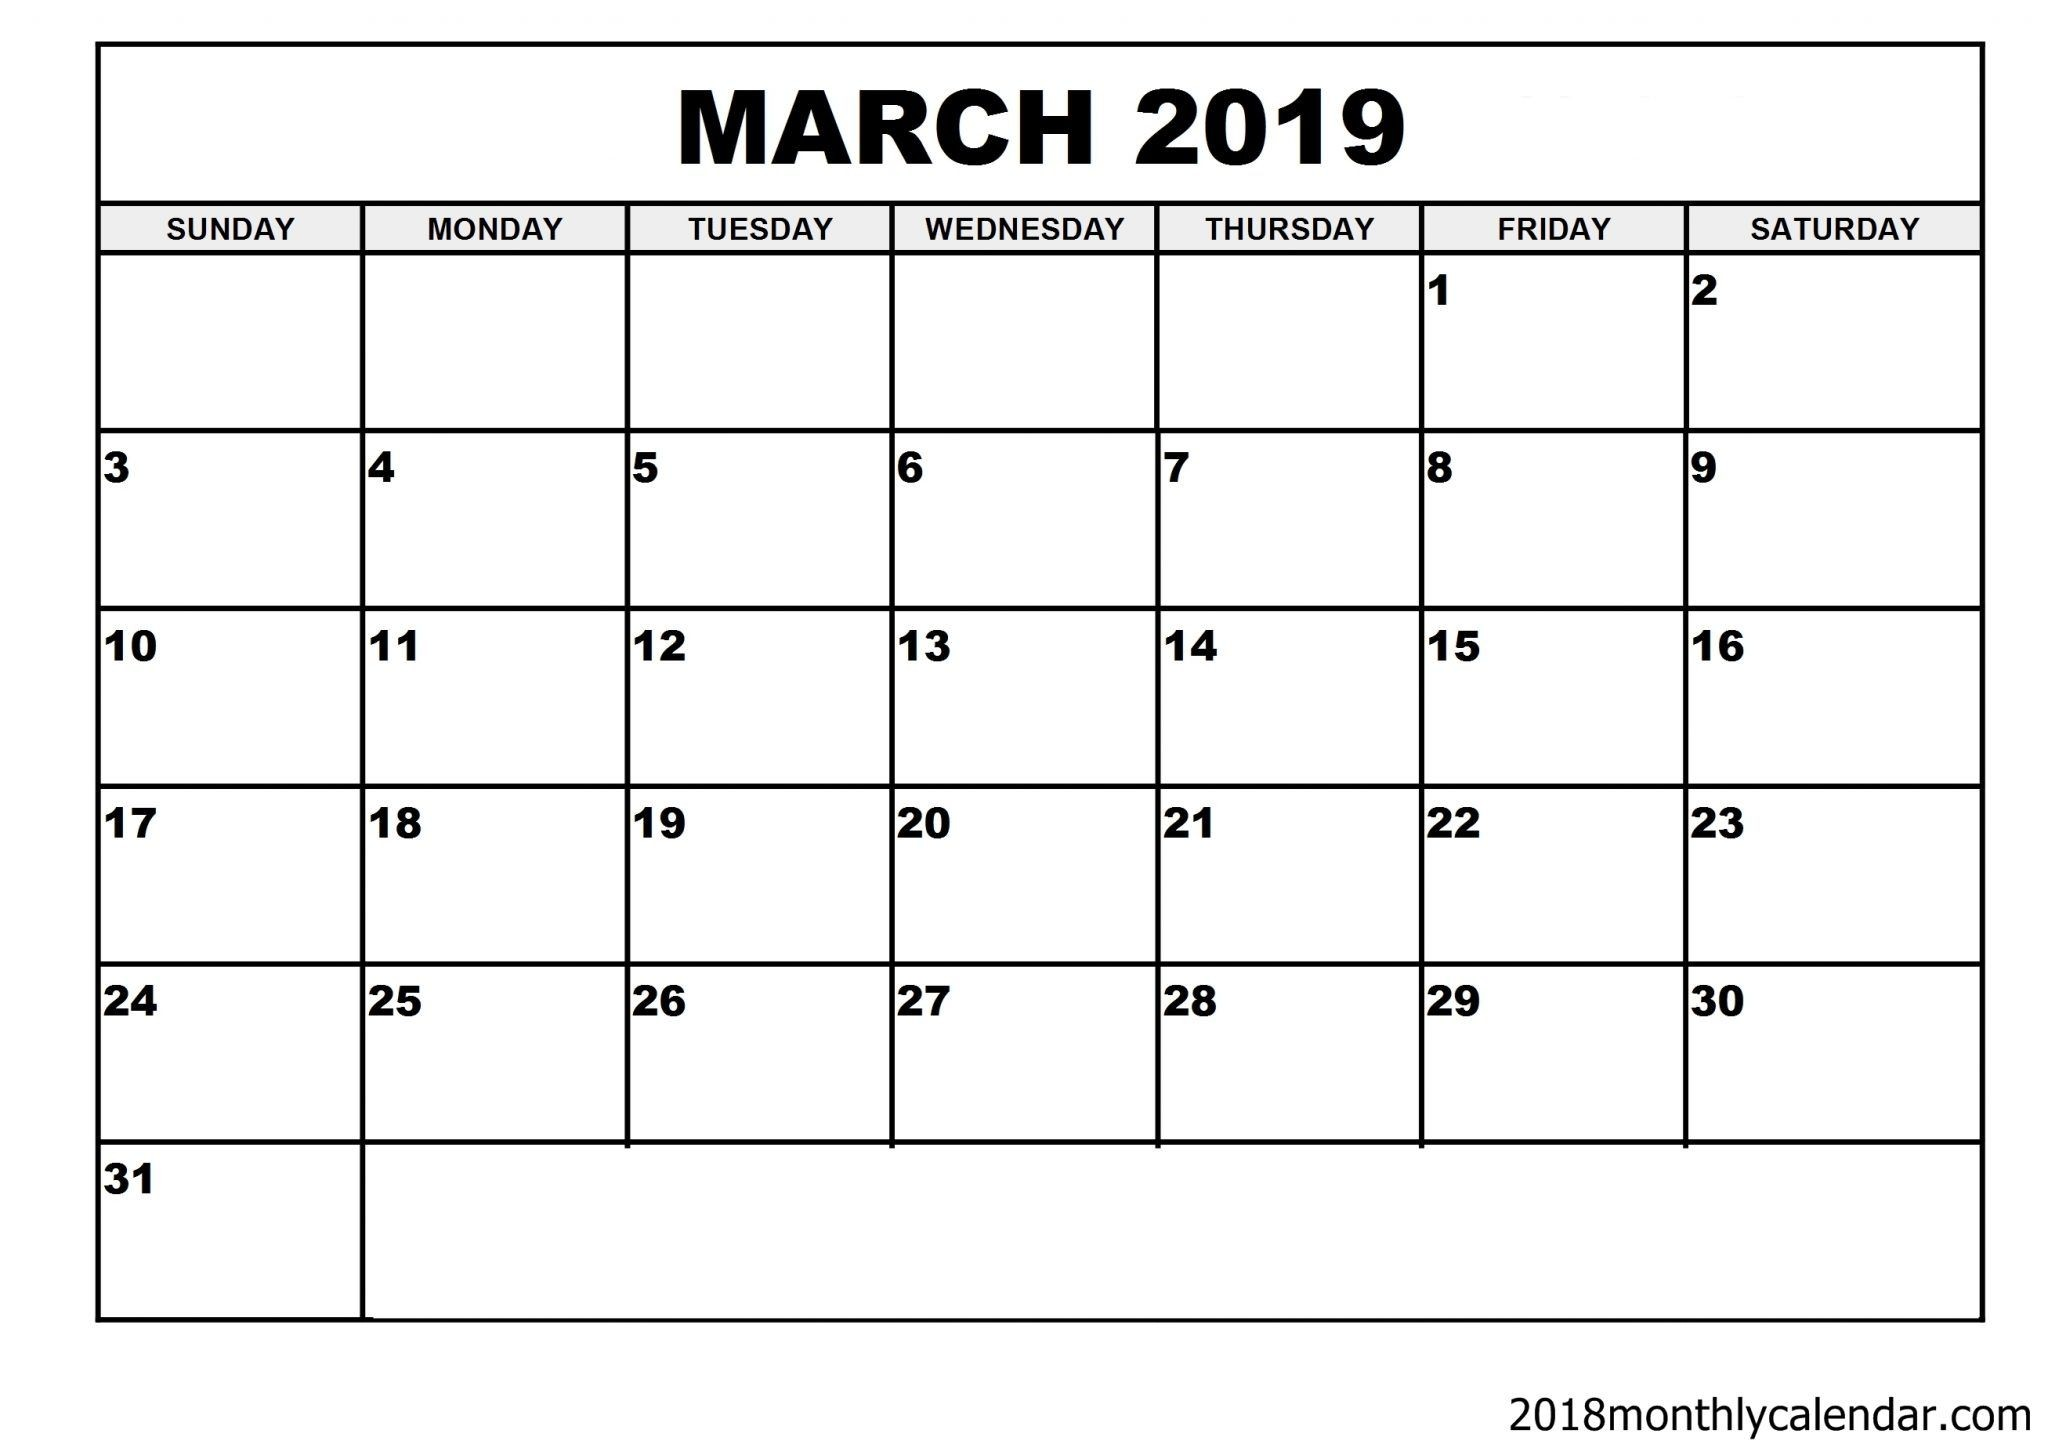 March Calendar Blank 2019 Más Arriba-a-fecha 150 Best Free March 2019 Calendar Printable Templates Images In 2019 Of March Calendar Blank 2019 Más Recientes Lagunitas Announces 2018 Release Calendar Willitized Coffee Stout